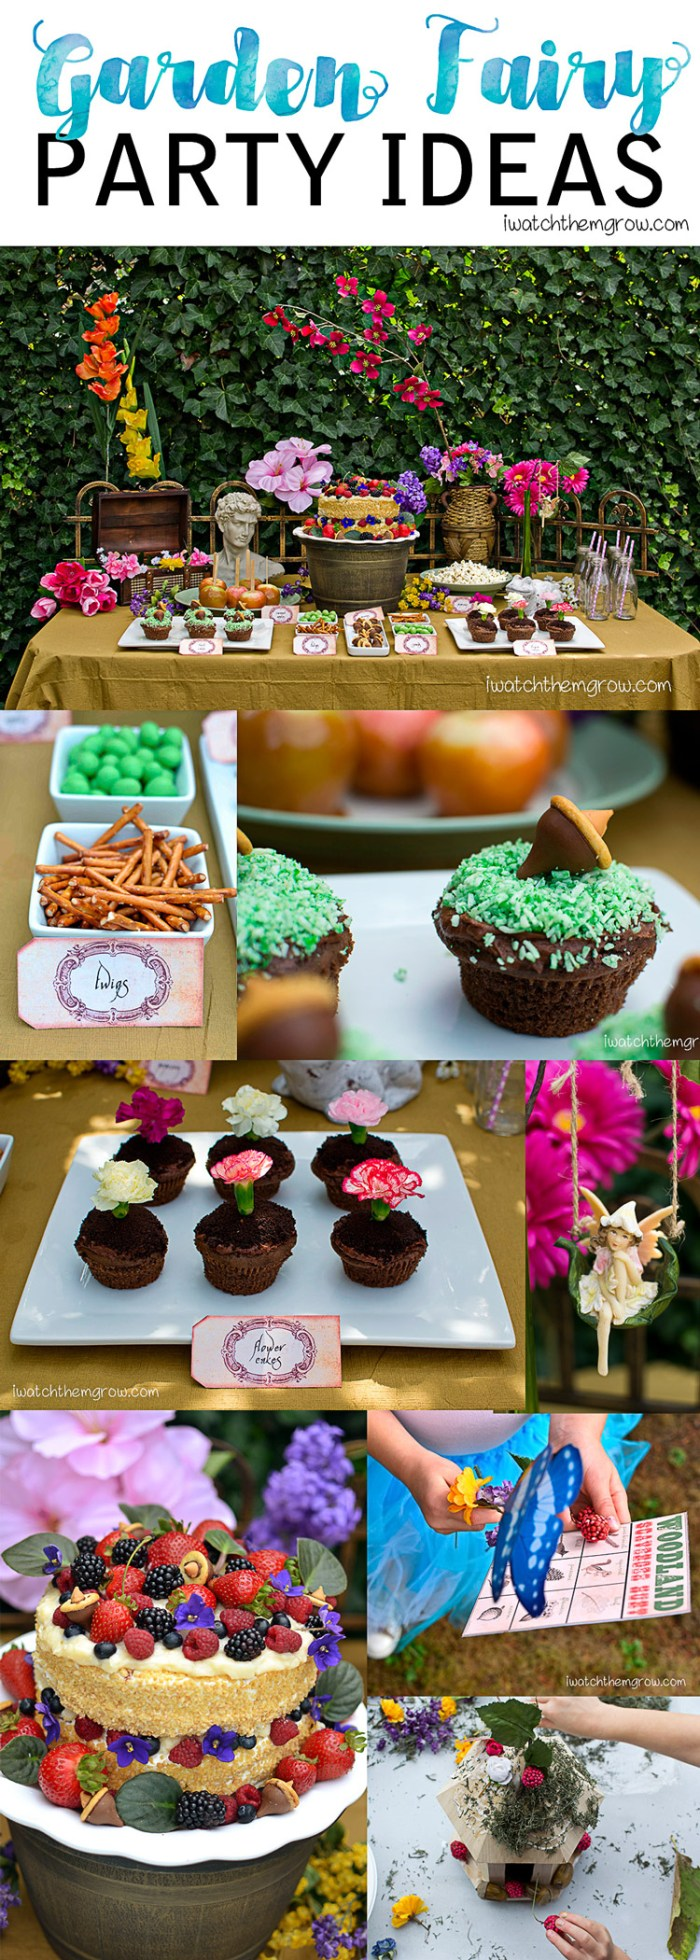 What a gorgeous garden fairy party! Lots of ideas for food, decorations and activities.